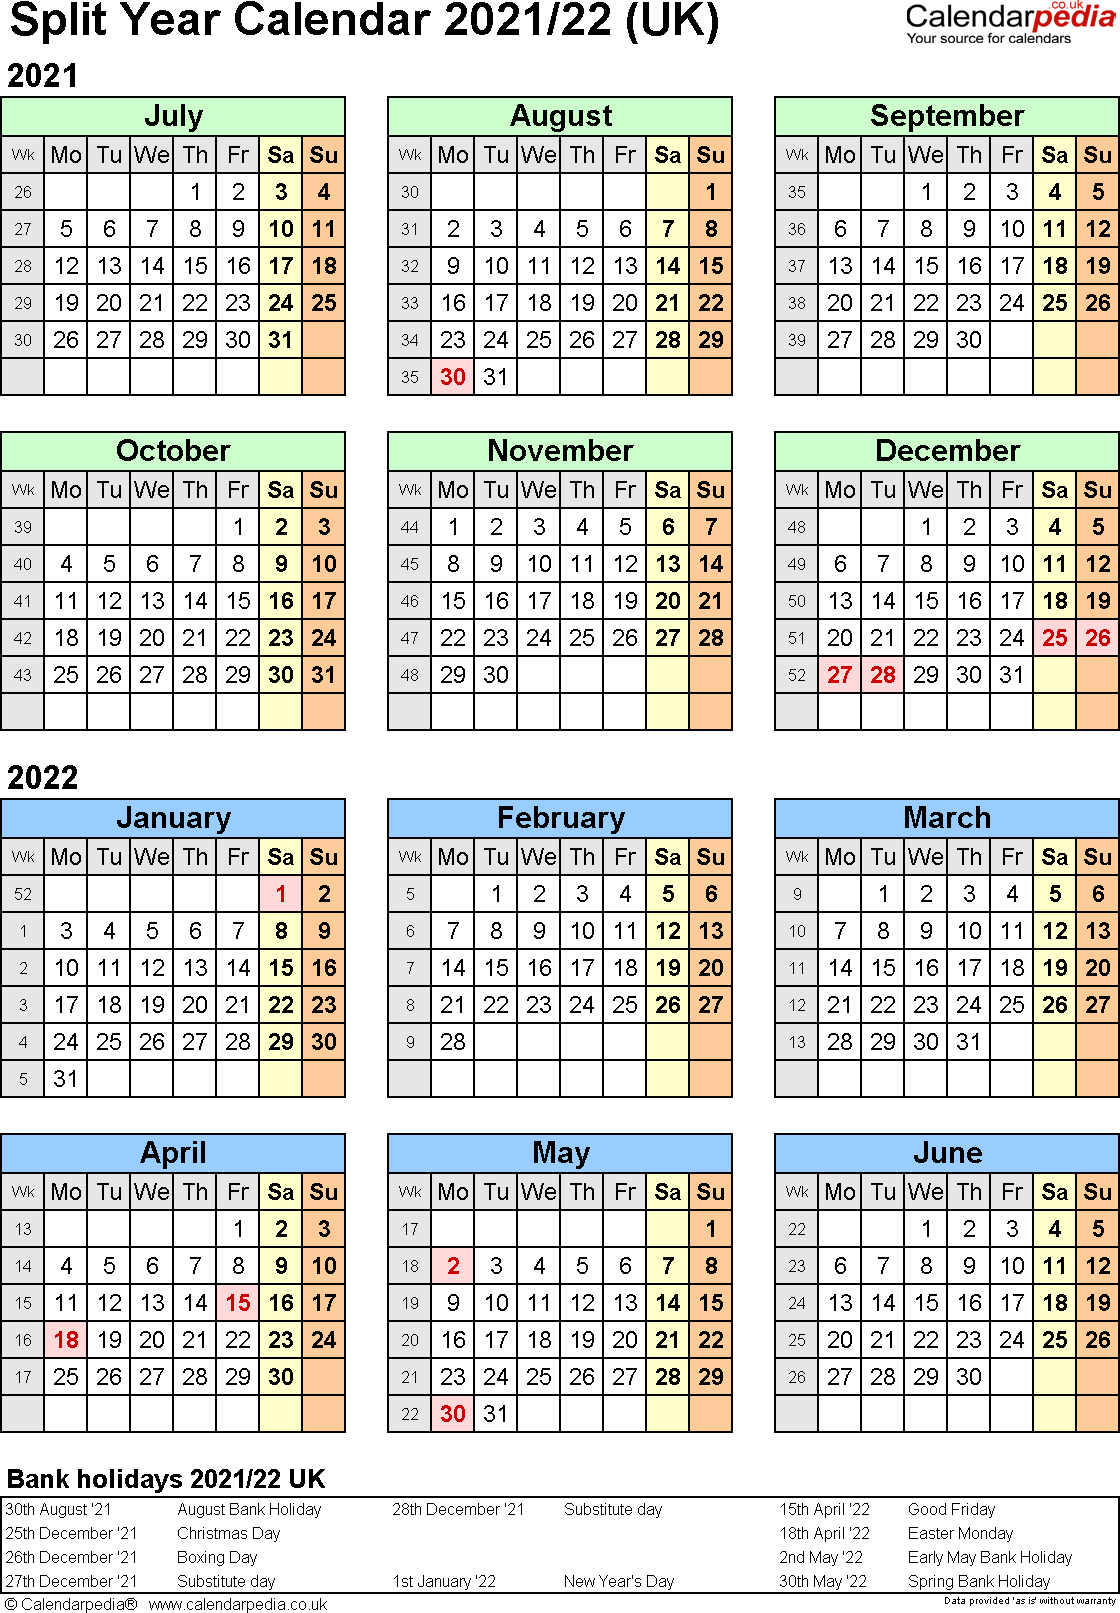 Template 2: Excel template for split year calendar 2021/2022 (portrait orientation, 1 page, A4)